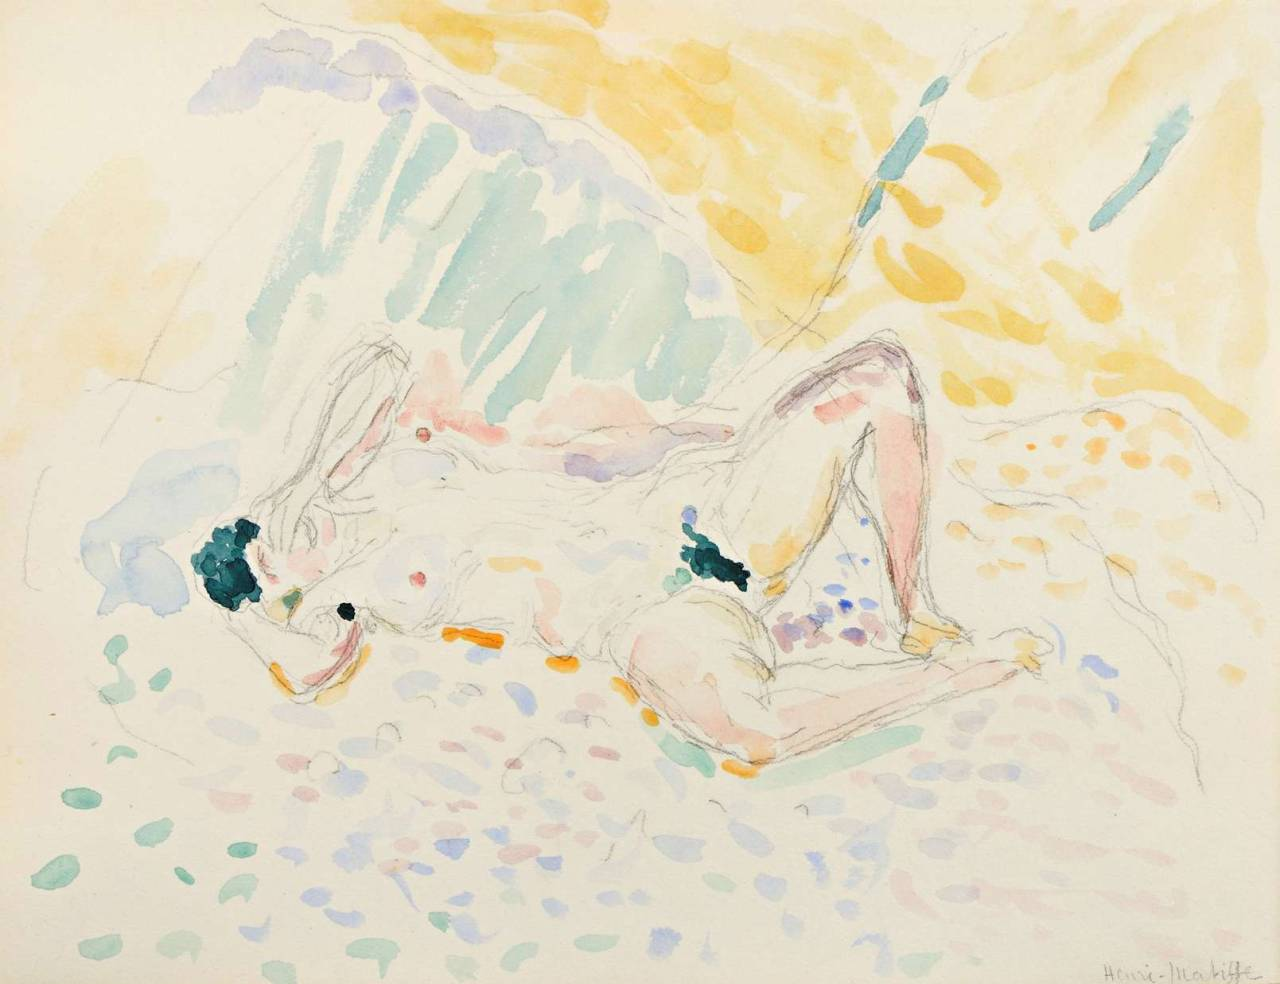 Henri Matisse (1869-1954),  Reclining Nude  (1905), pencil and watercolour on paper, 27 x 21 cm. Via  kundst .